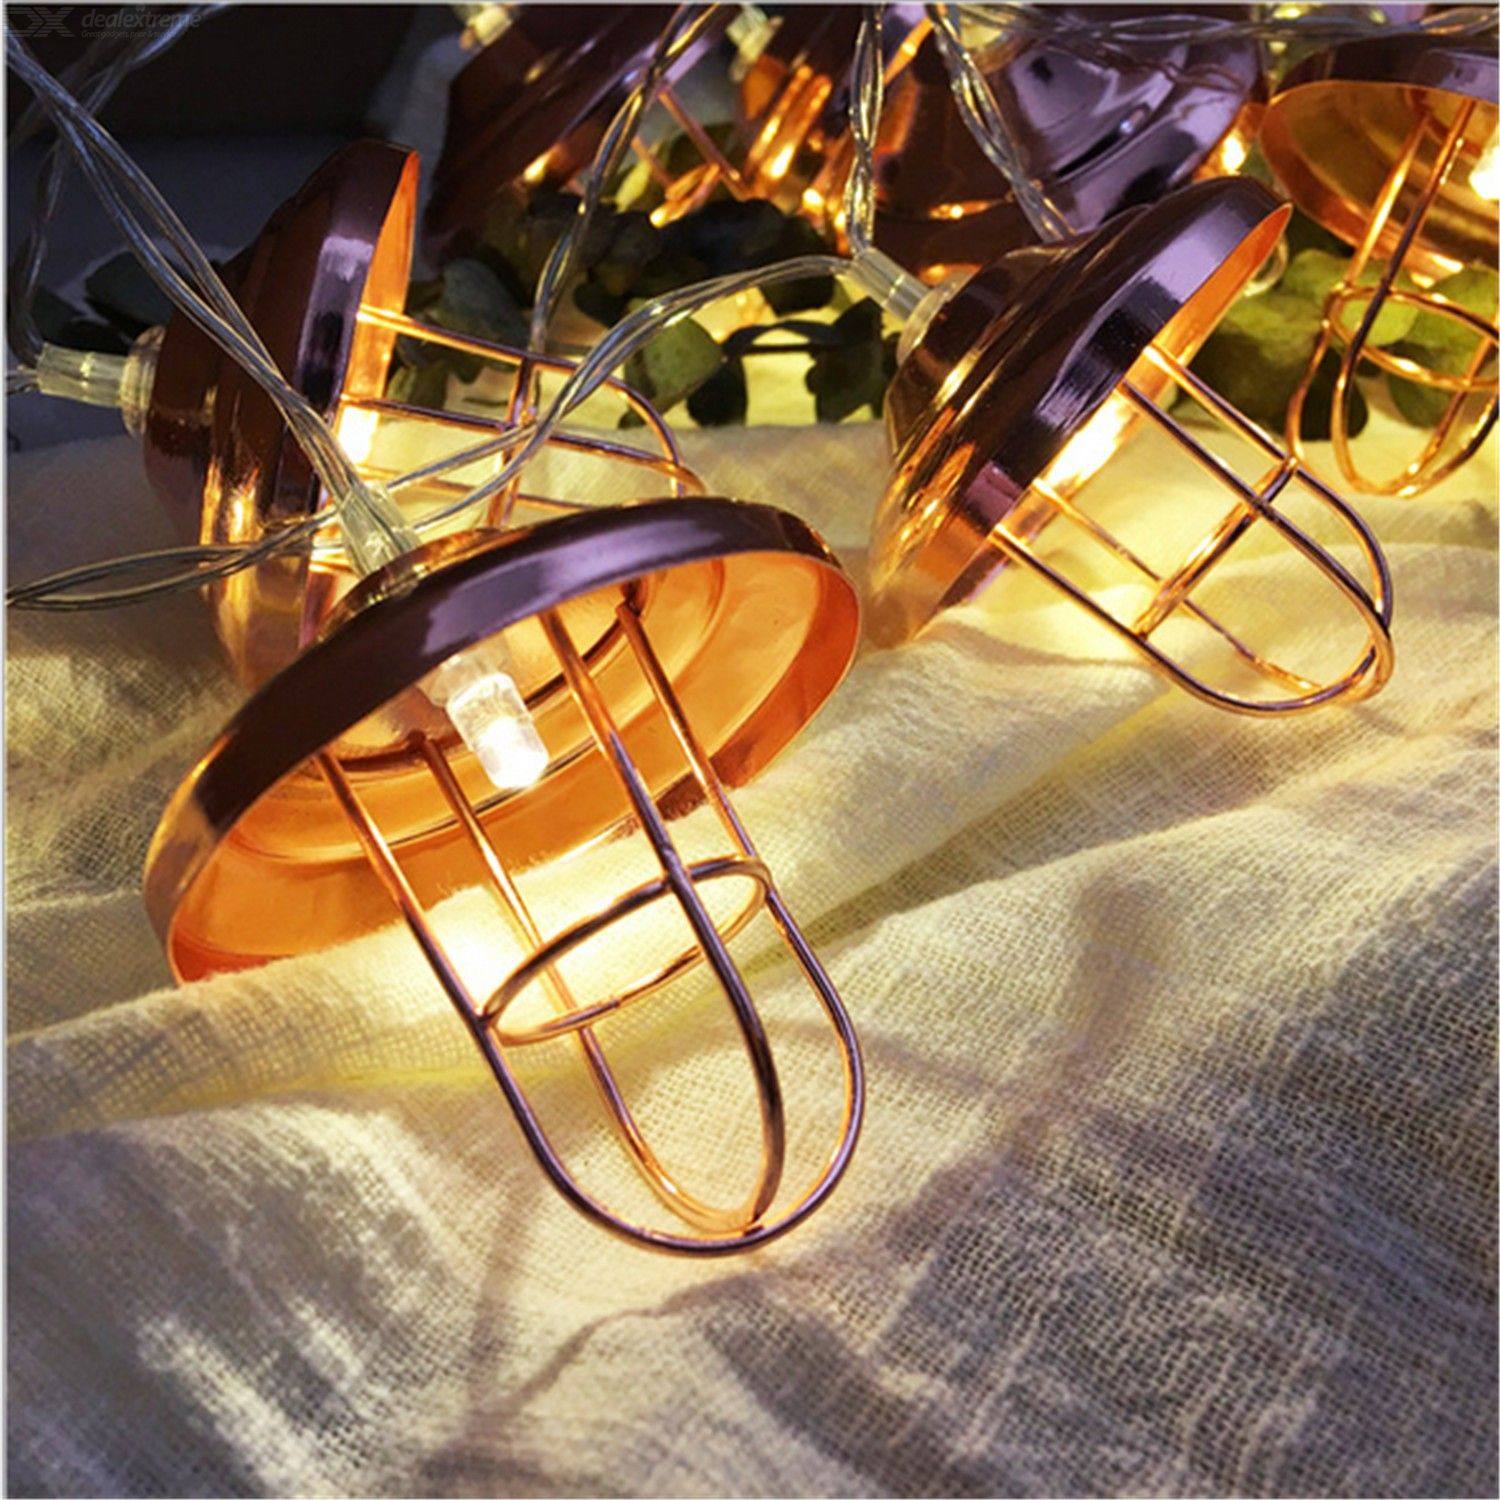 New lampshade led string creative home nordic festival bedroom outdoor lamp 1m 10 lamp